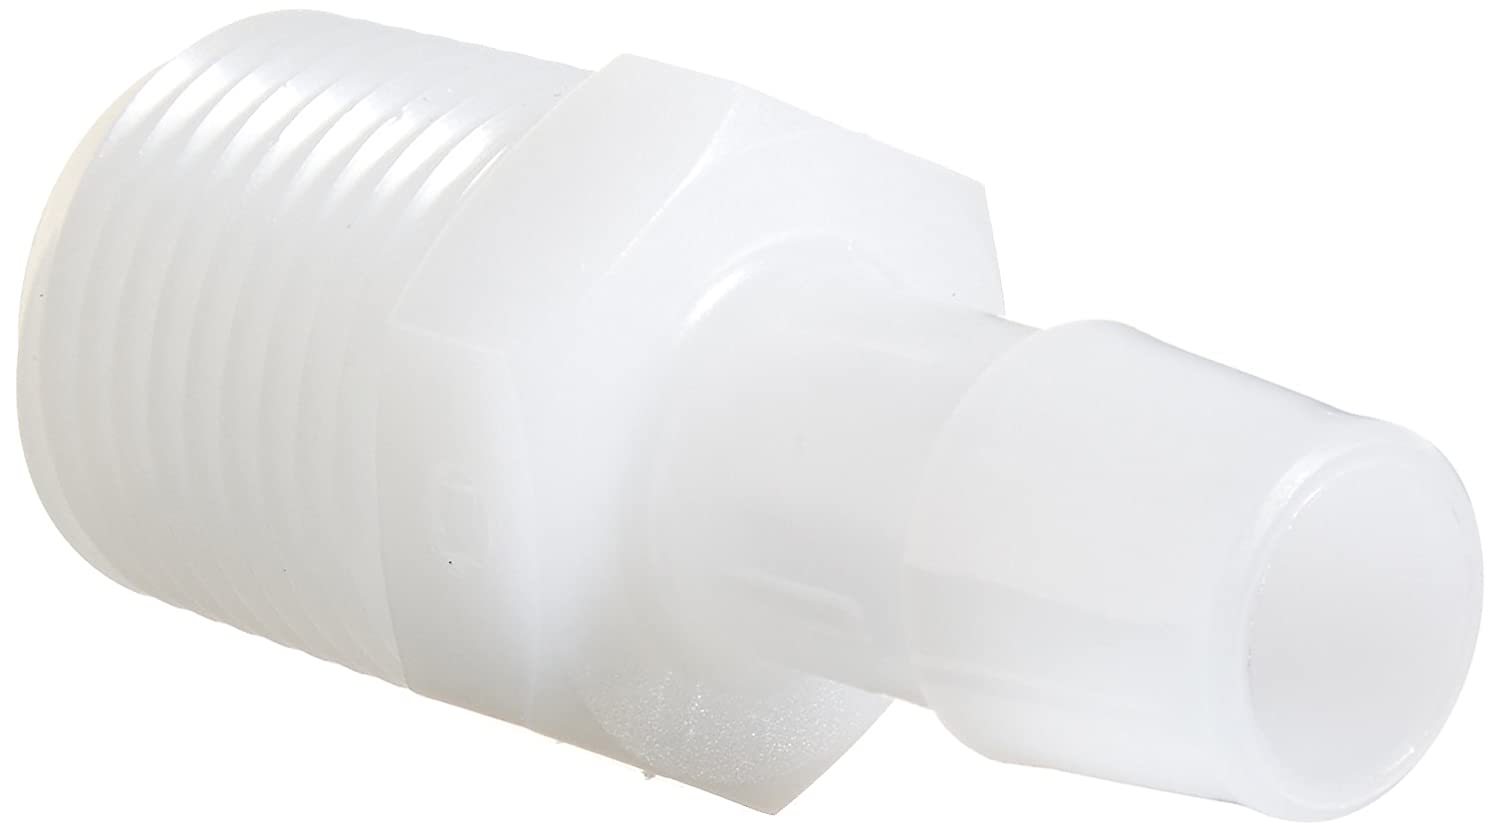 Eldon James A8-8HDPE High Density Polyethylene Adapter Fitting, 1/2-14 NPT to 1/2